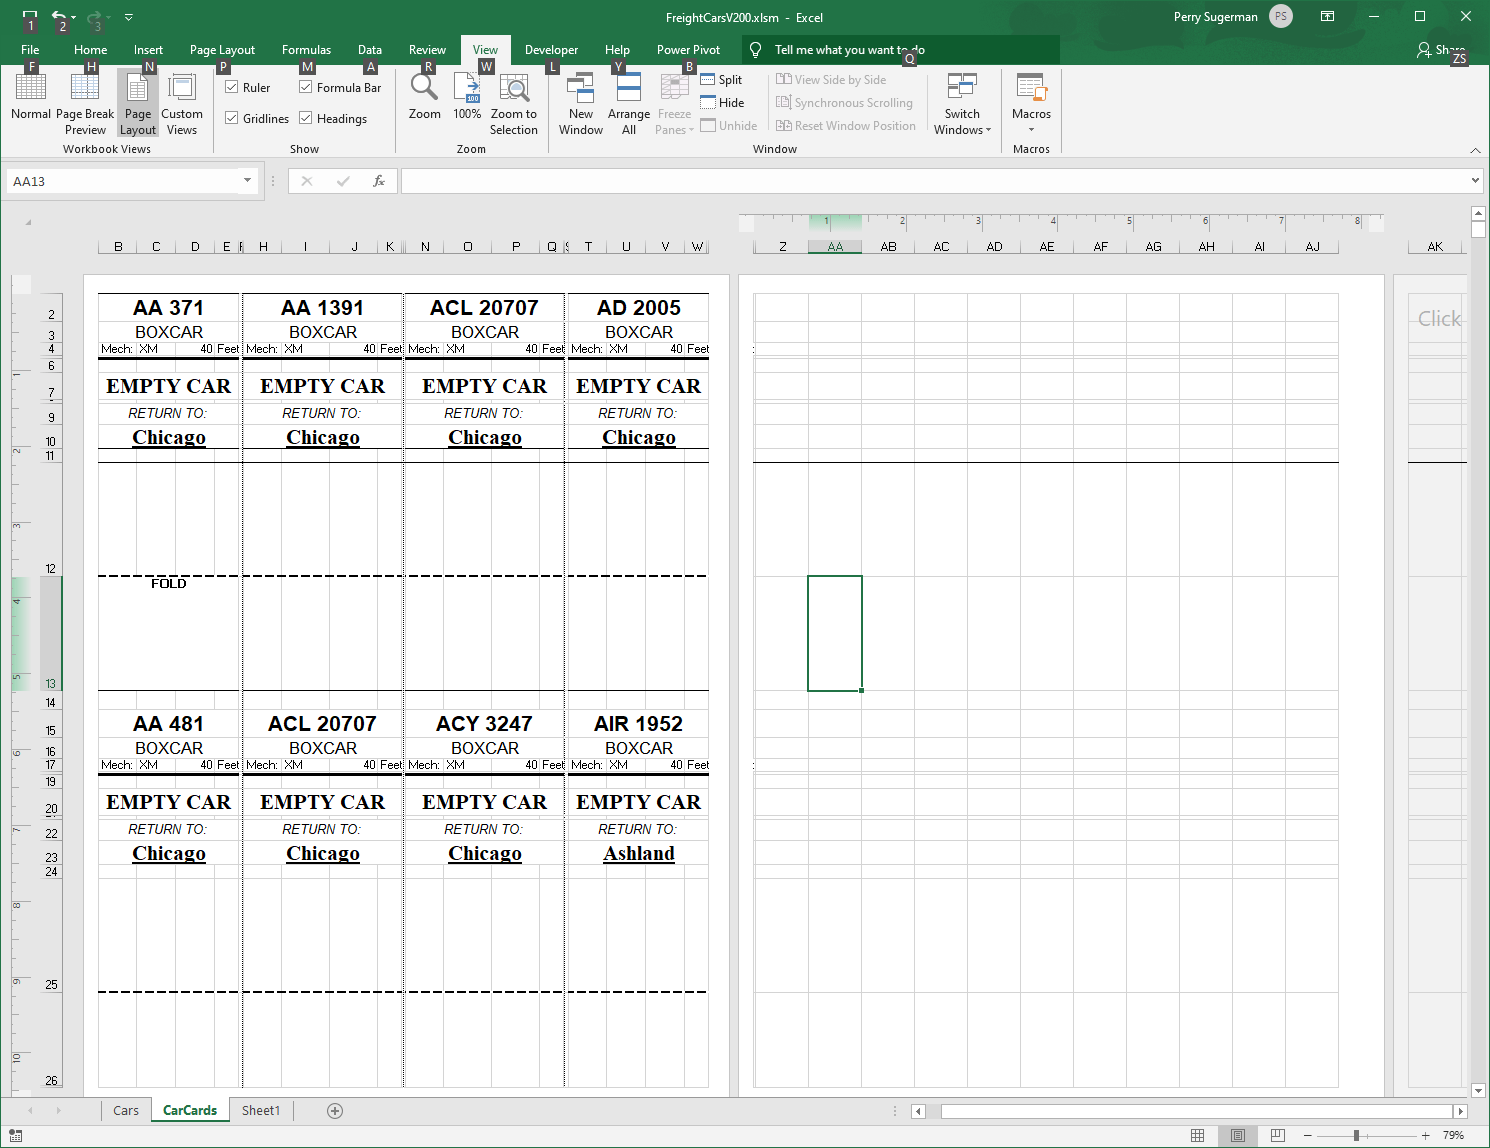 Excel Worksheet With Many 2 125 X 5 5 Parts To Be